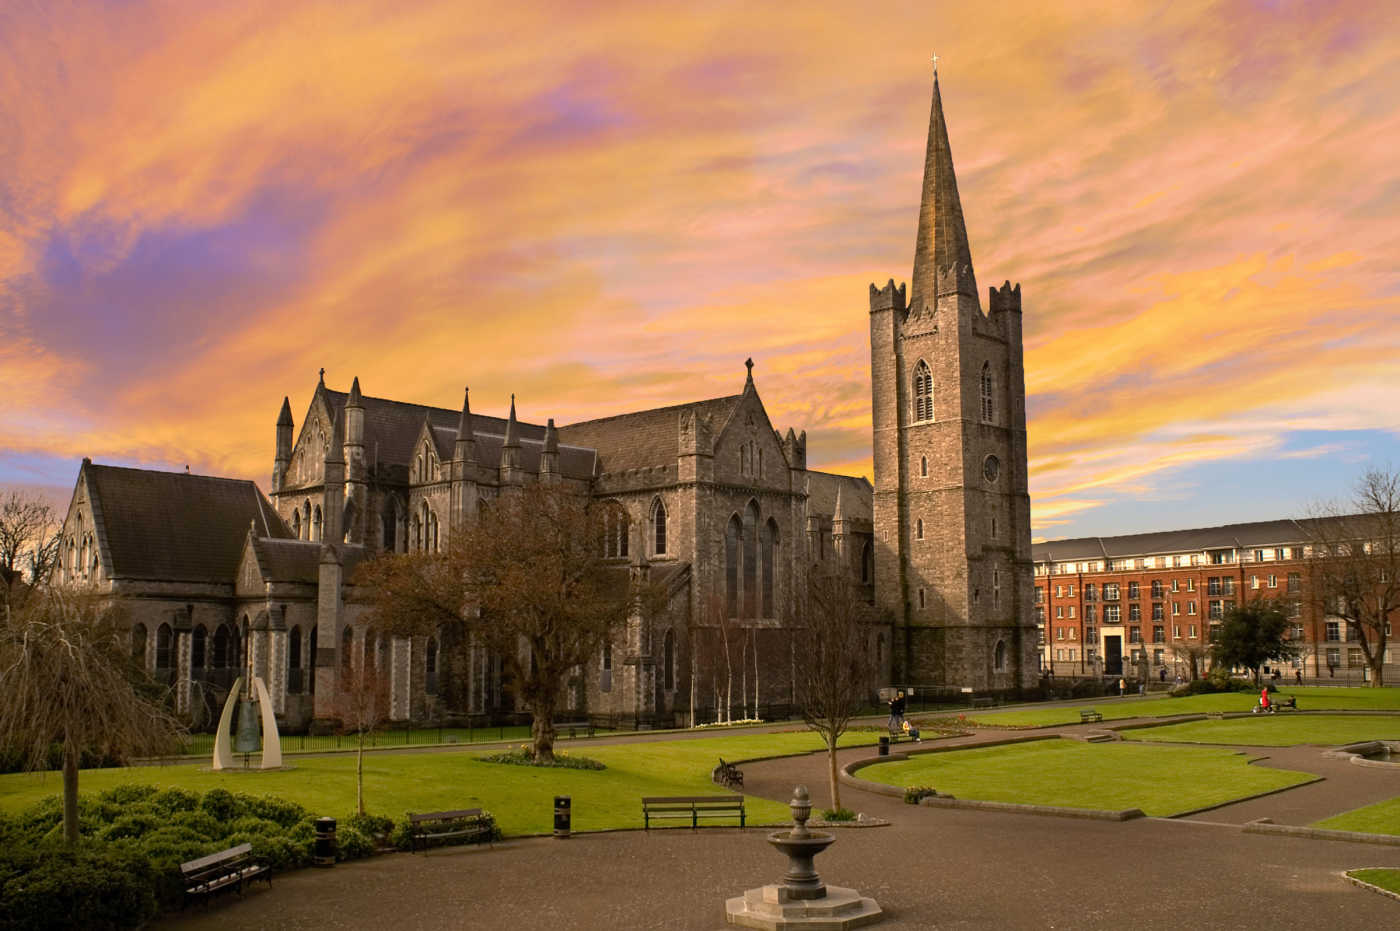 6-Nt Ireland Vacation w/ Car Rental from $1,933 for 2